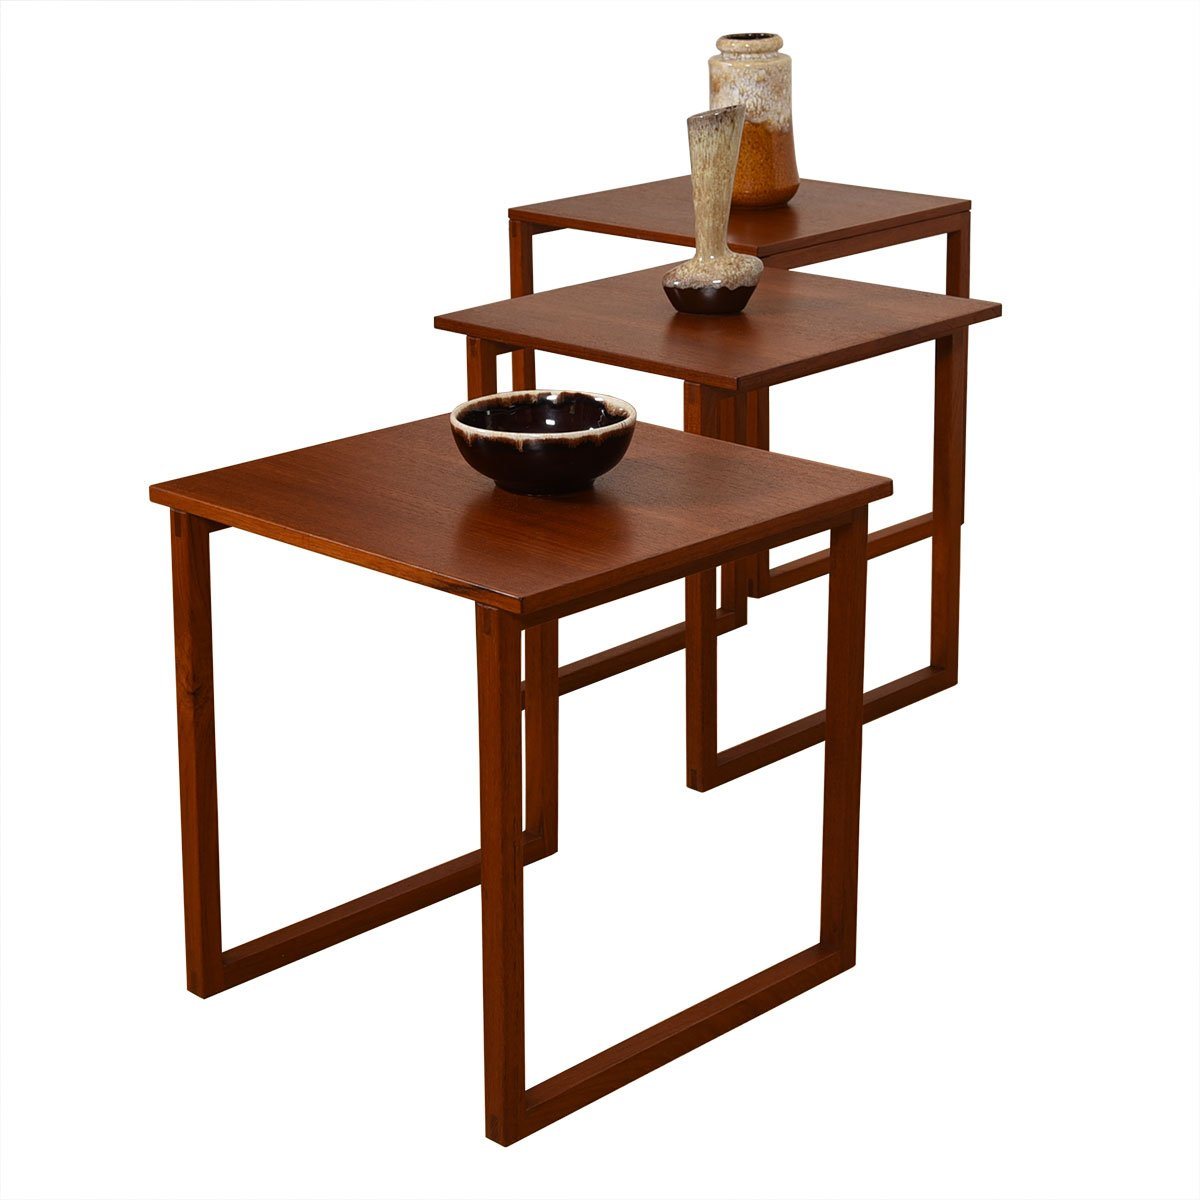 Kai Kristiansen Set of 3 Teak Cube Nesting Tables